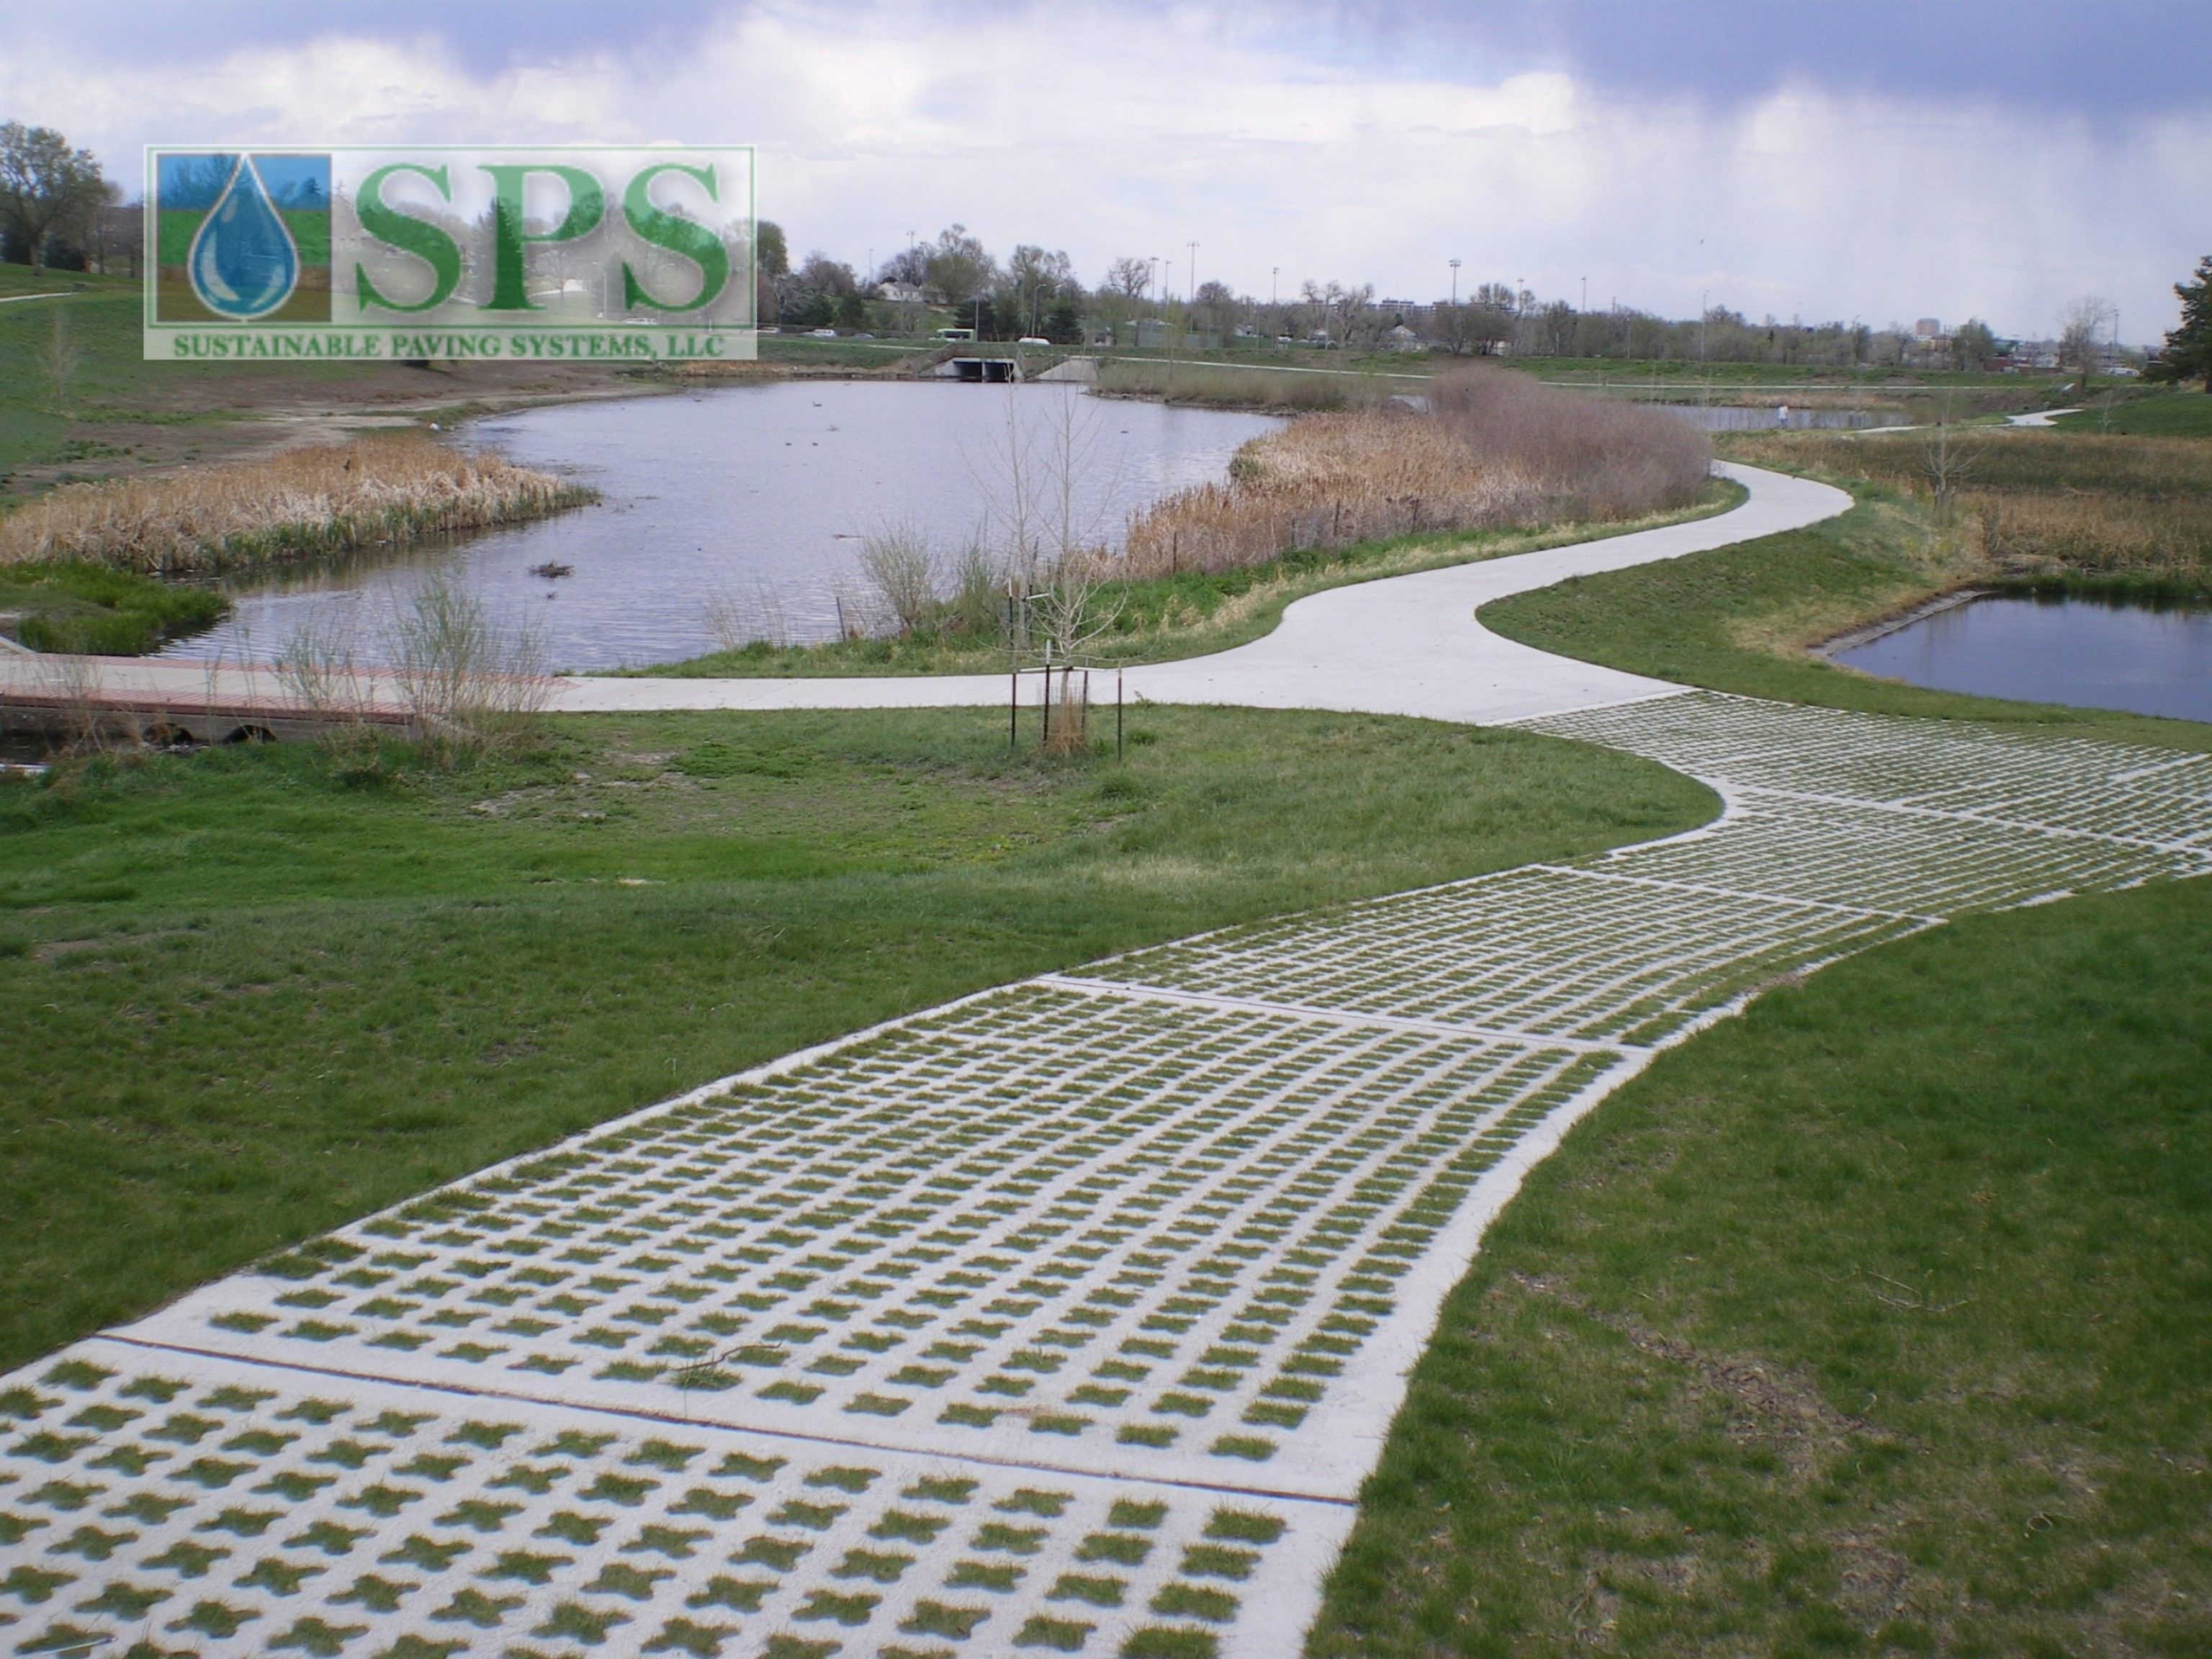 Featured here is Grasscrete, a pervious, grassed pavement system that was chosen for this site to provide stability to the area, while maintaining function, and preserving the scenic landscape.